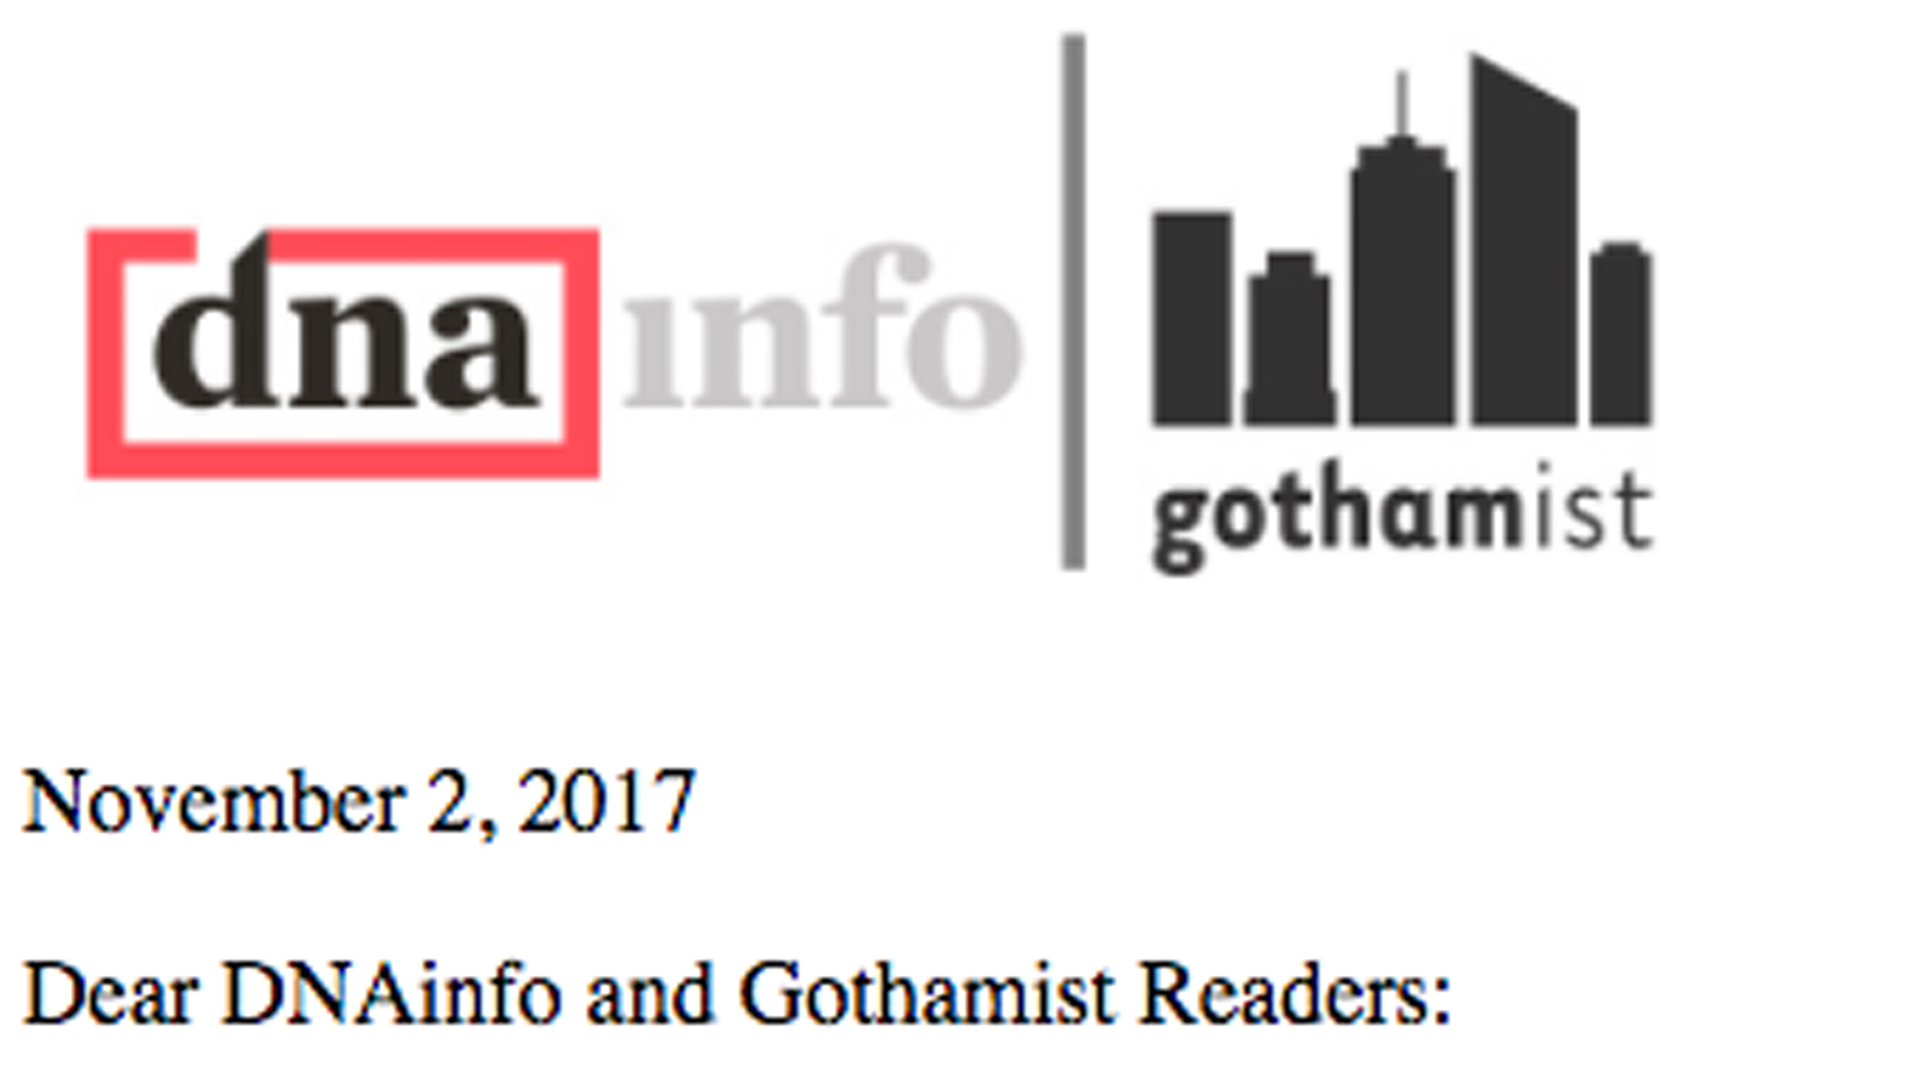 A message greeted users who tried to access the DNAinfo and Gothamist websites on Nov. 2, 2017.